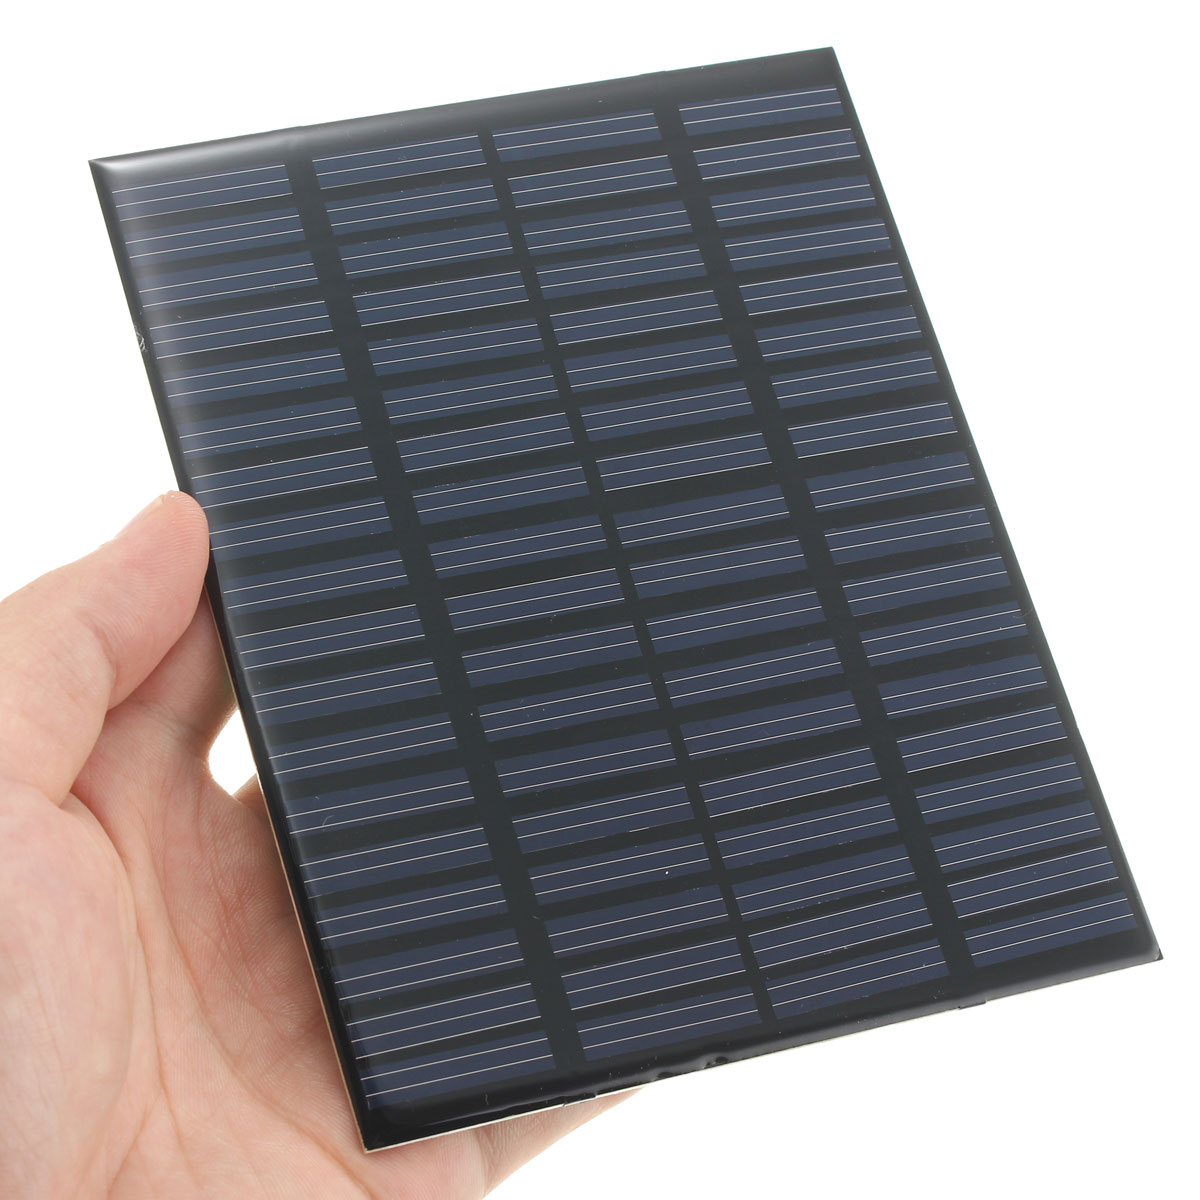 LEORY Hot Sale DIY 18V 1.5W Polycrystalline silicon Stored Energy Solar Panel Module System Solar Cells Charger 11x14x0.2cm